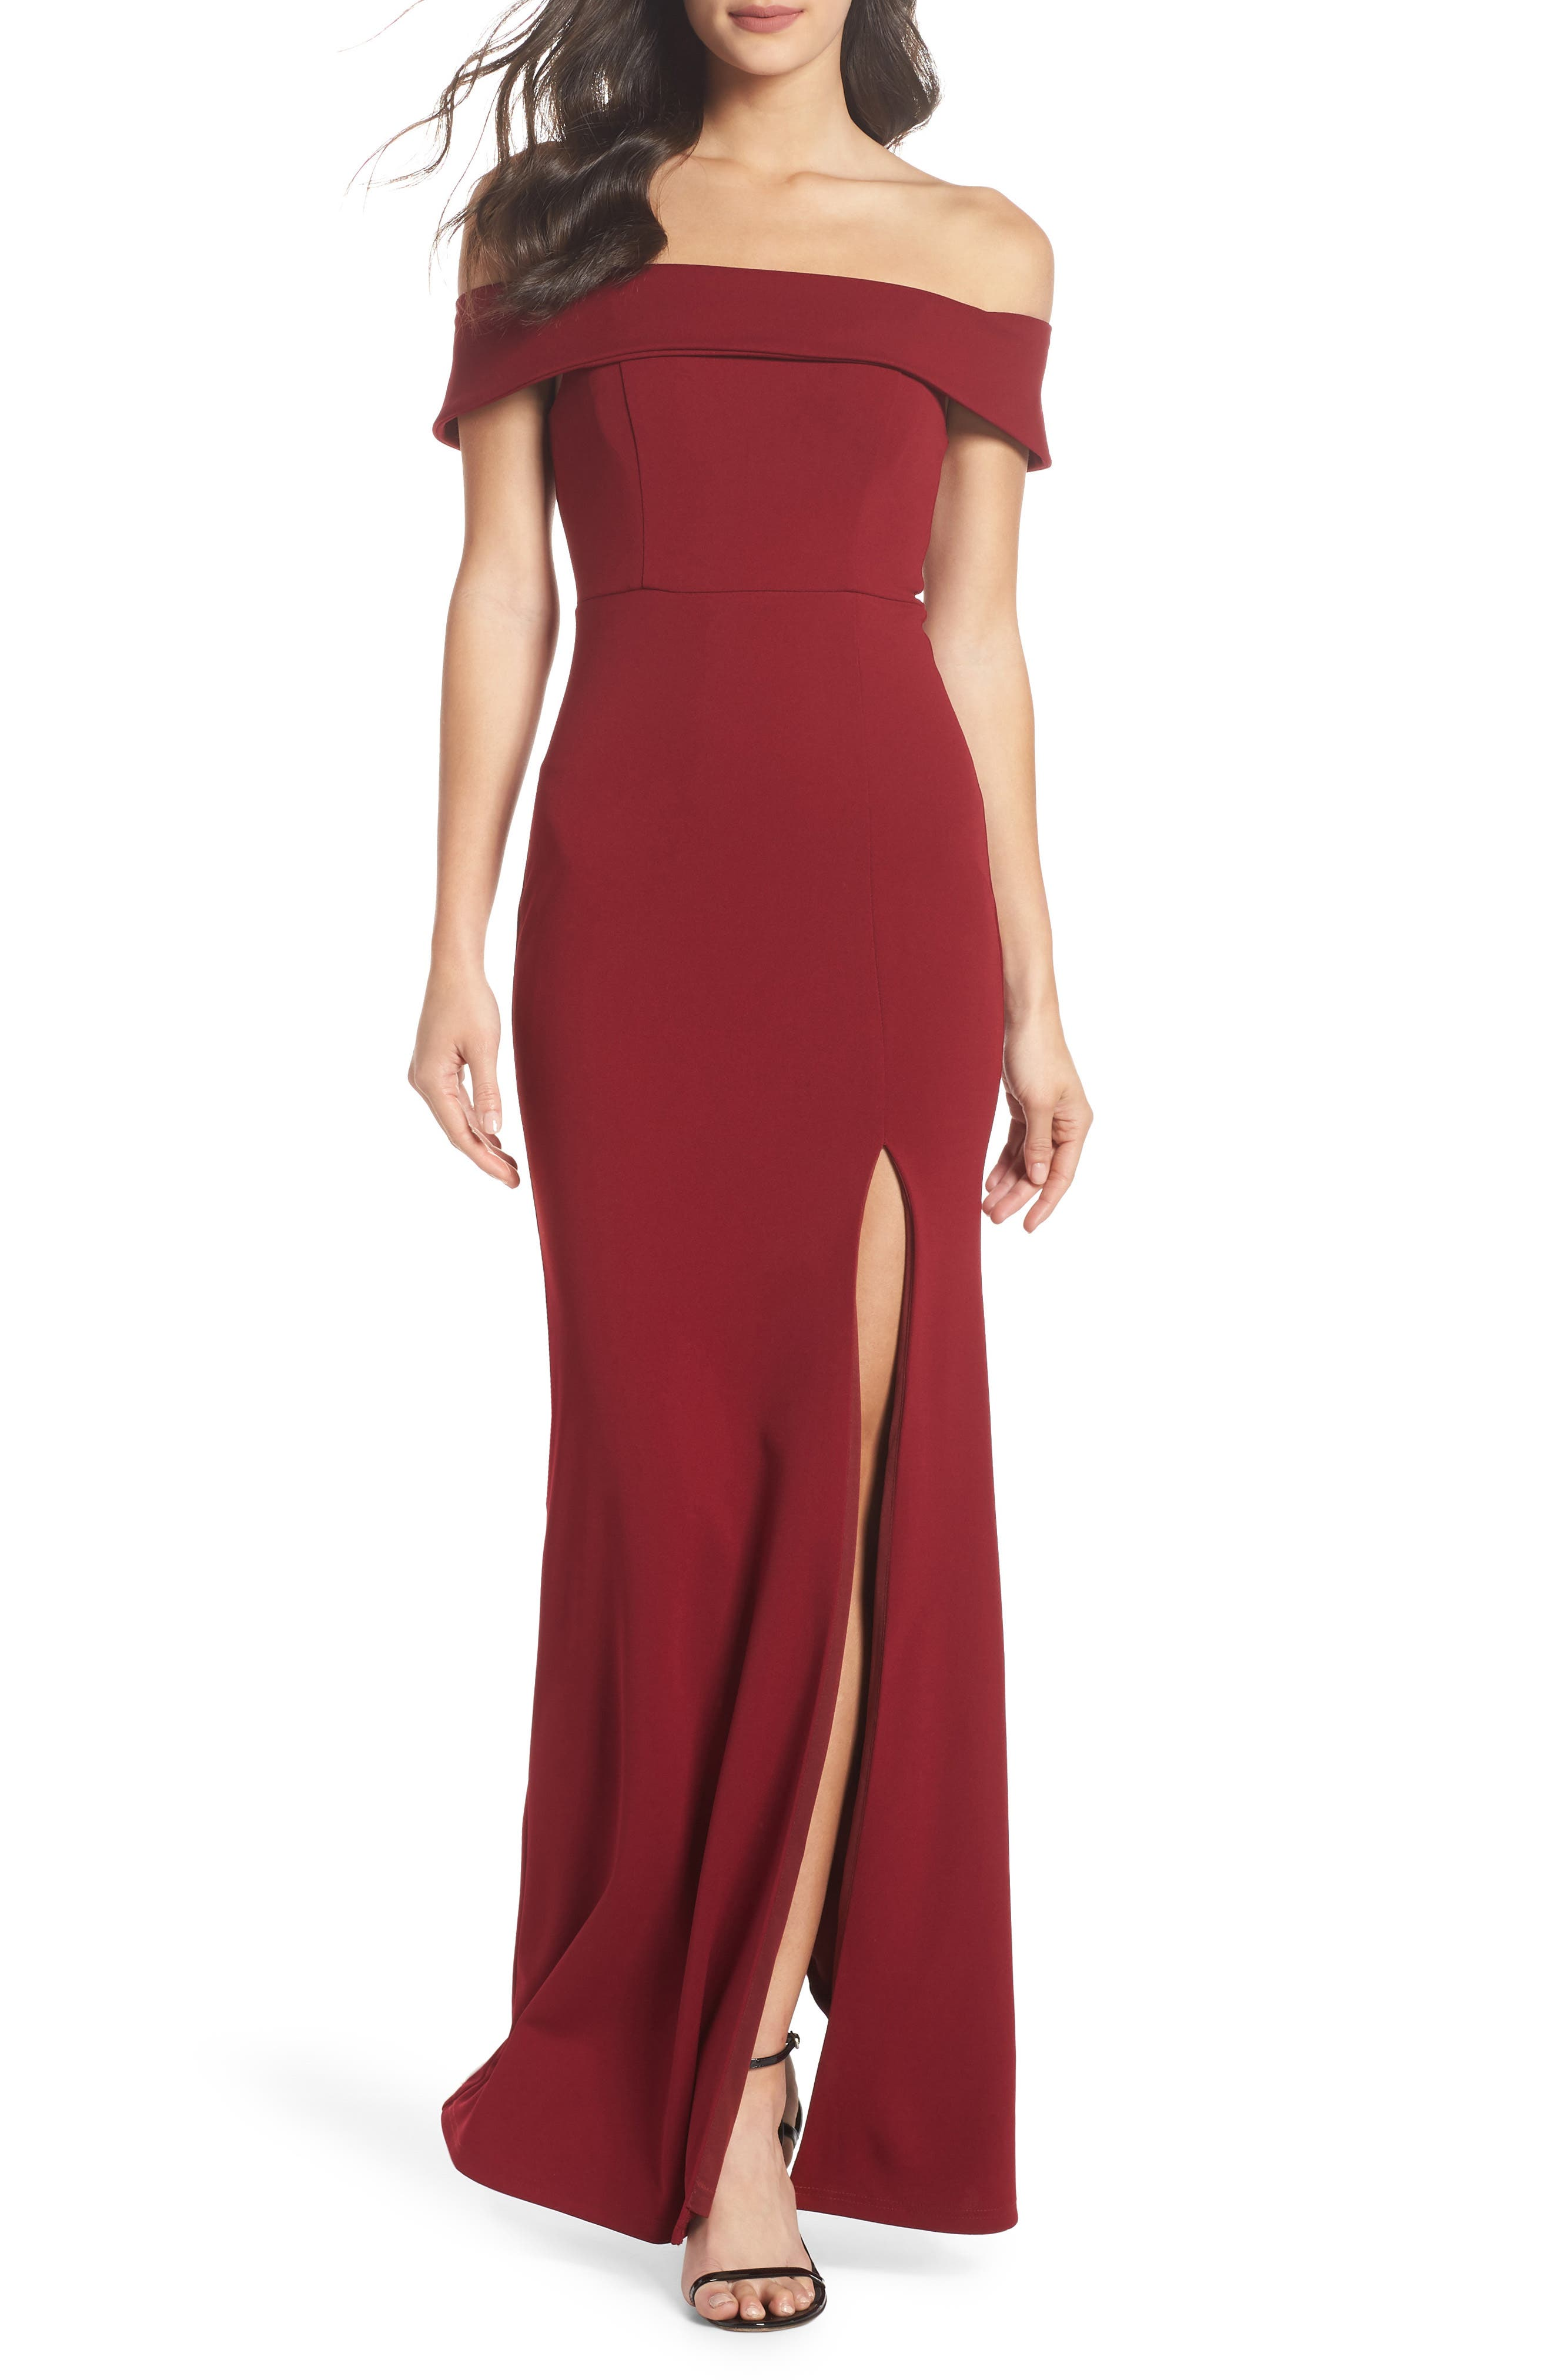 LULUS Off the Shoulder Mermaid Gown, Main, color, 931